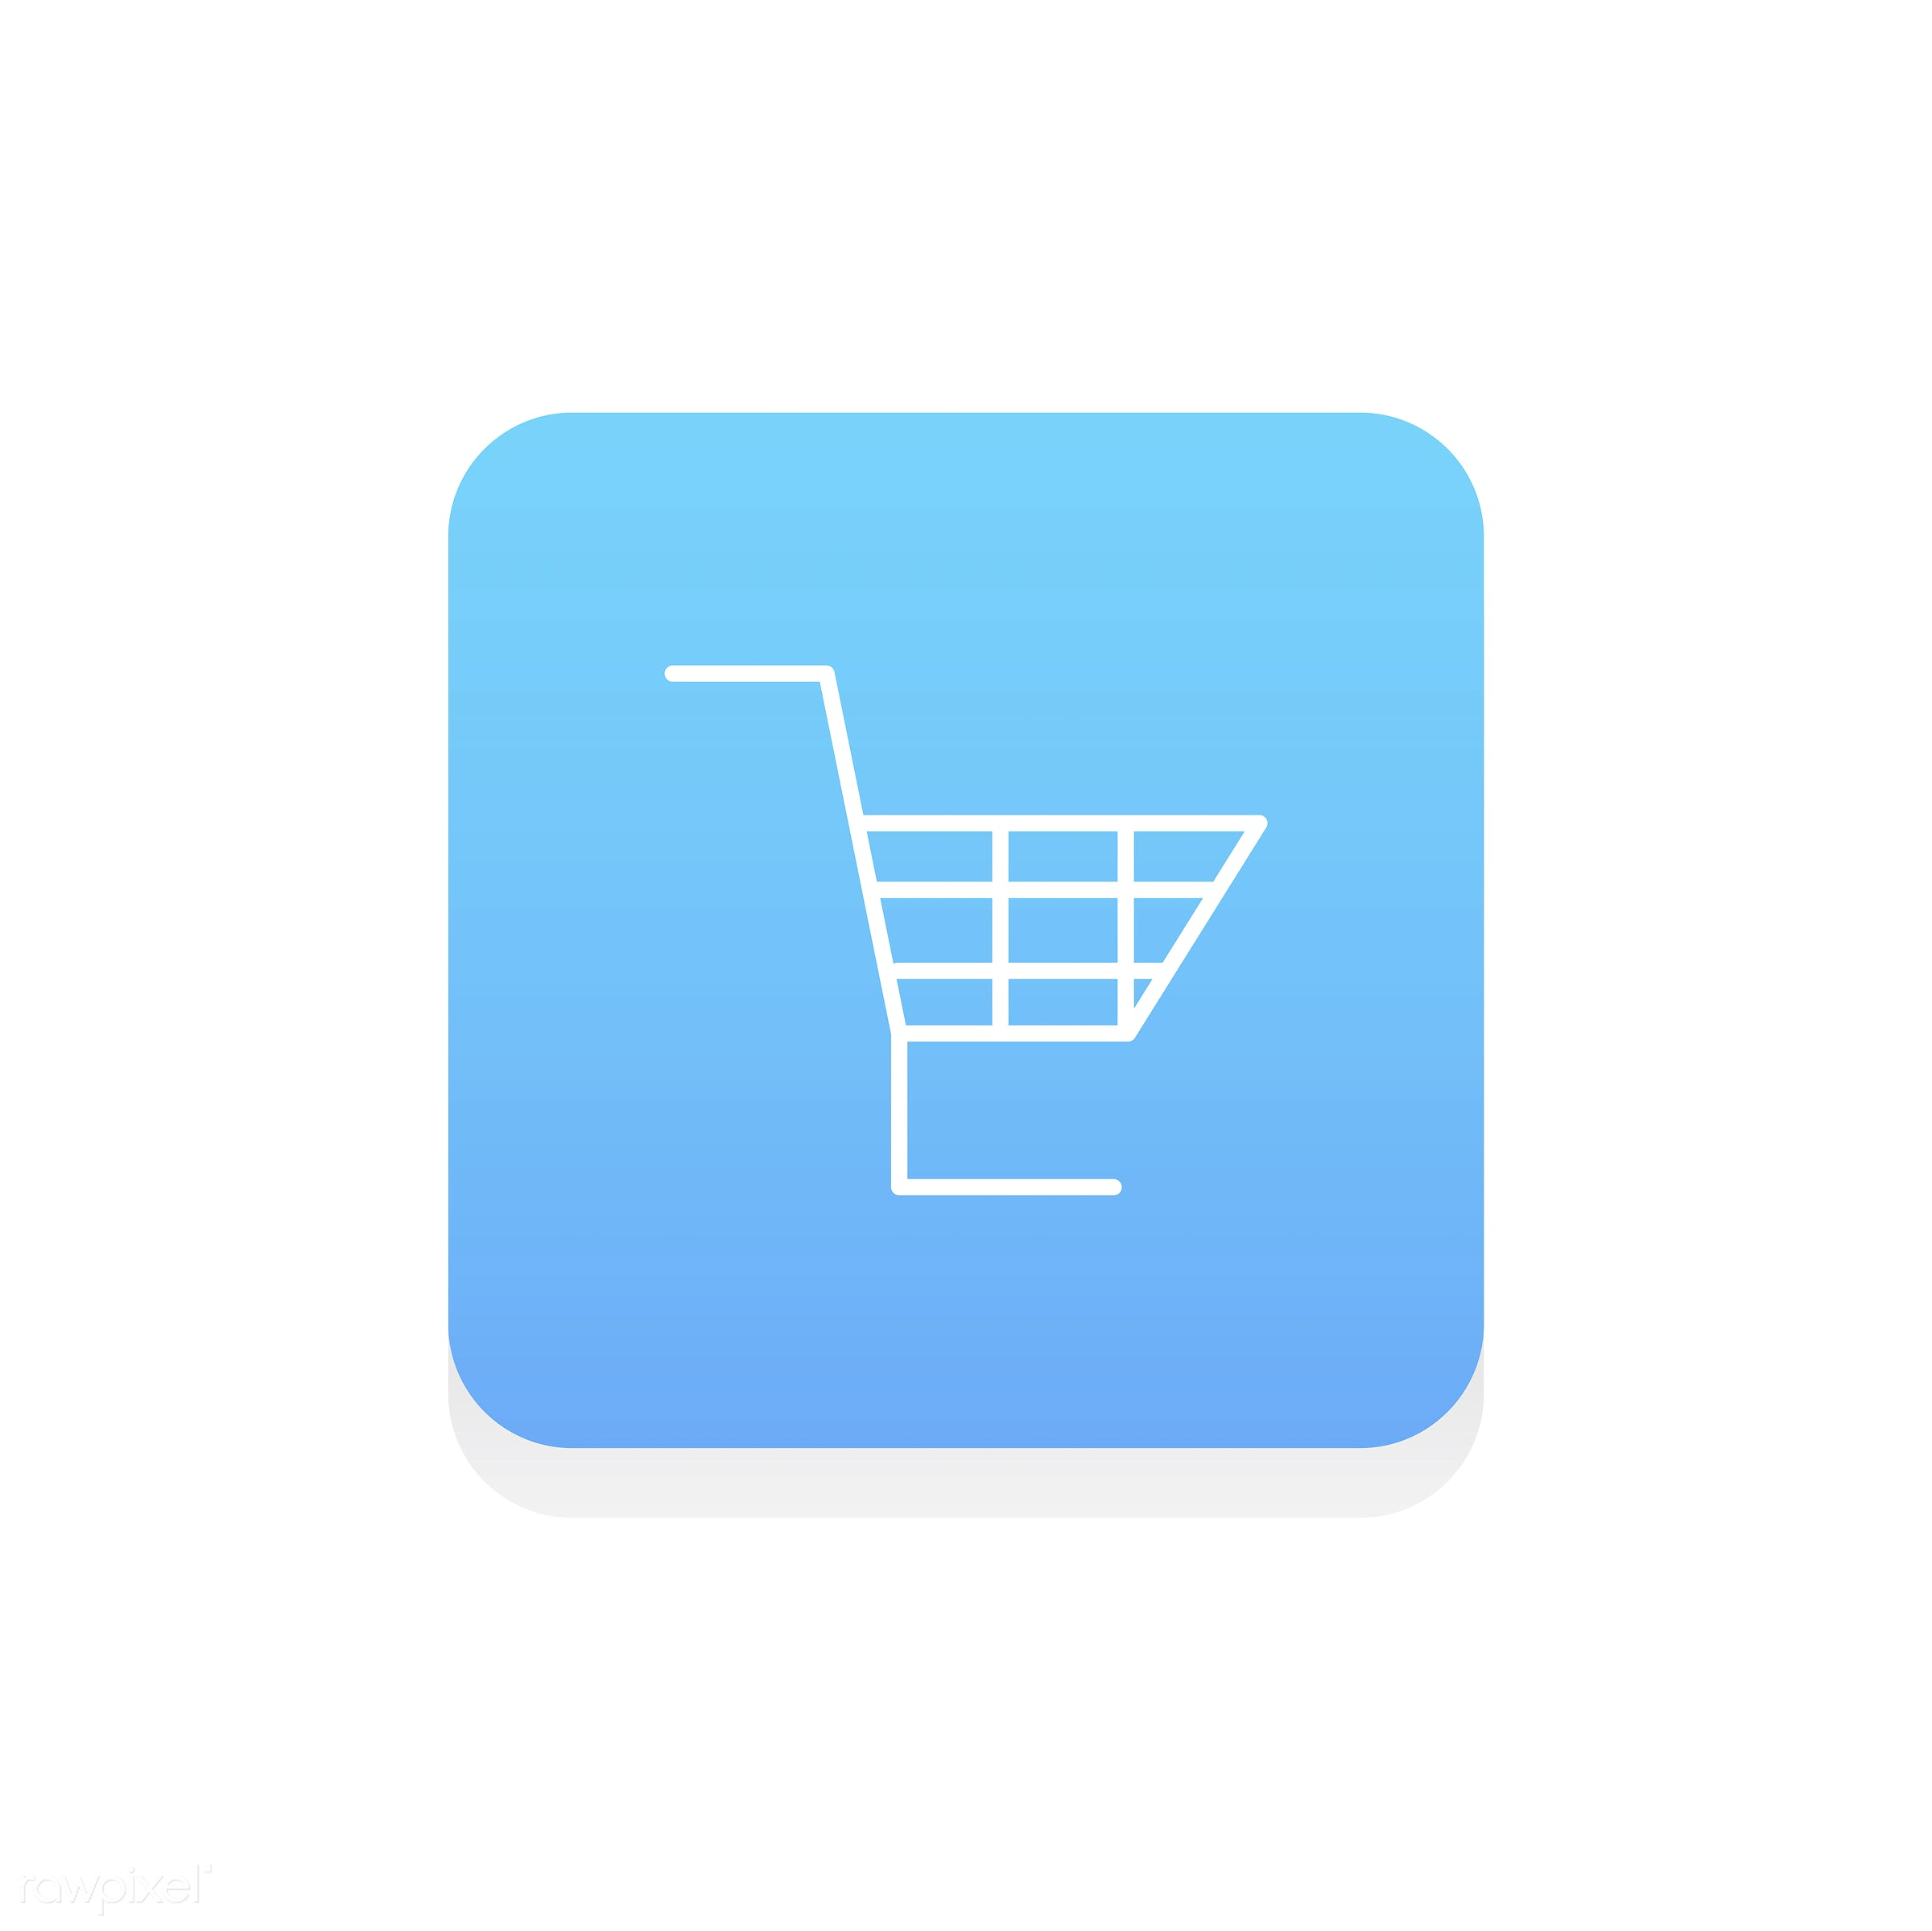 Vector of online shopping icon - basket, cart, design, flat, graphic, icon, illustration, internet, isolated, layout, online...